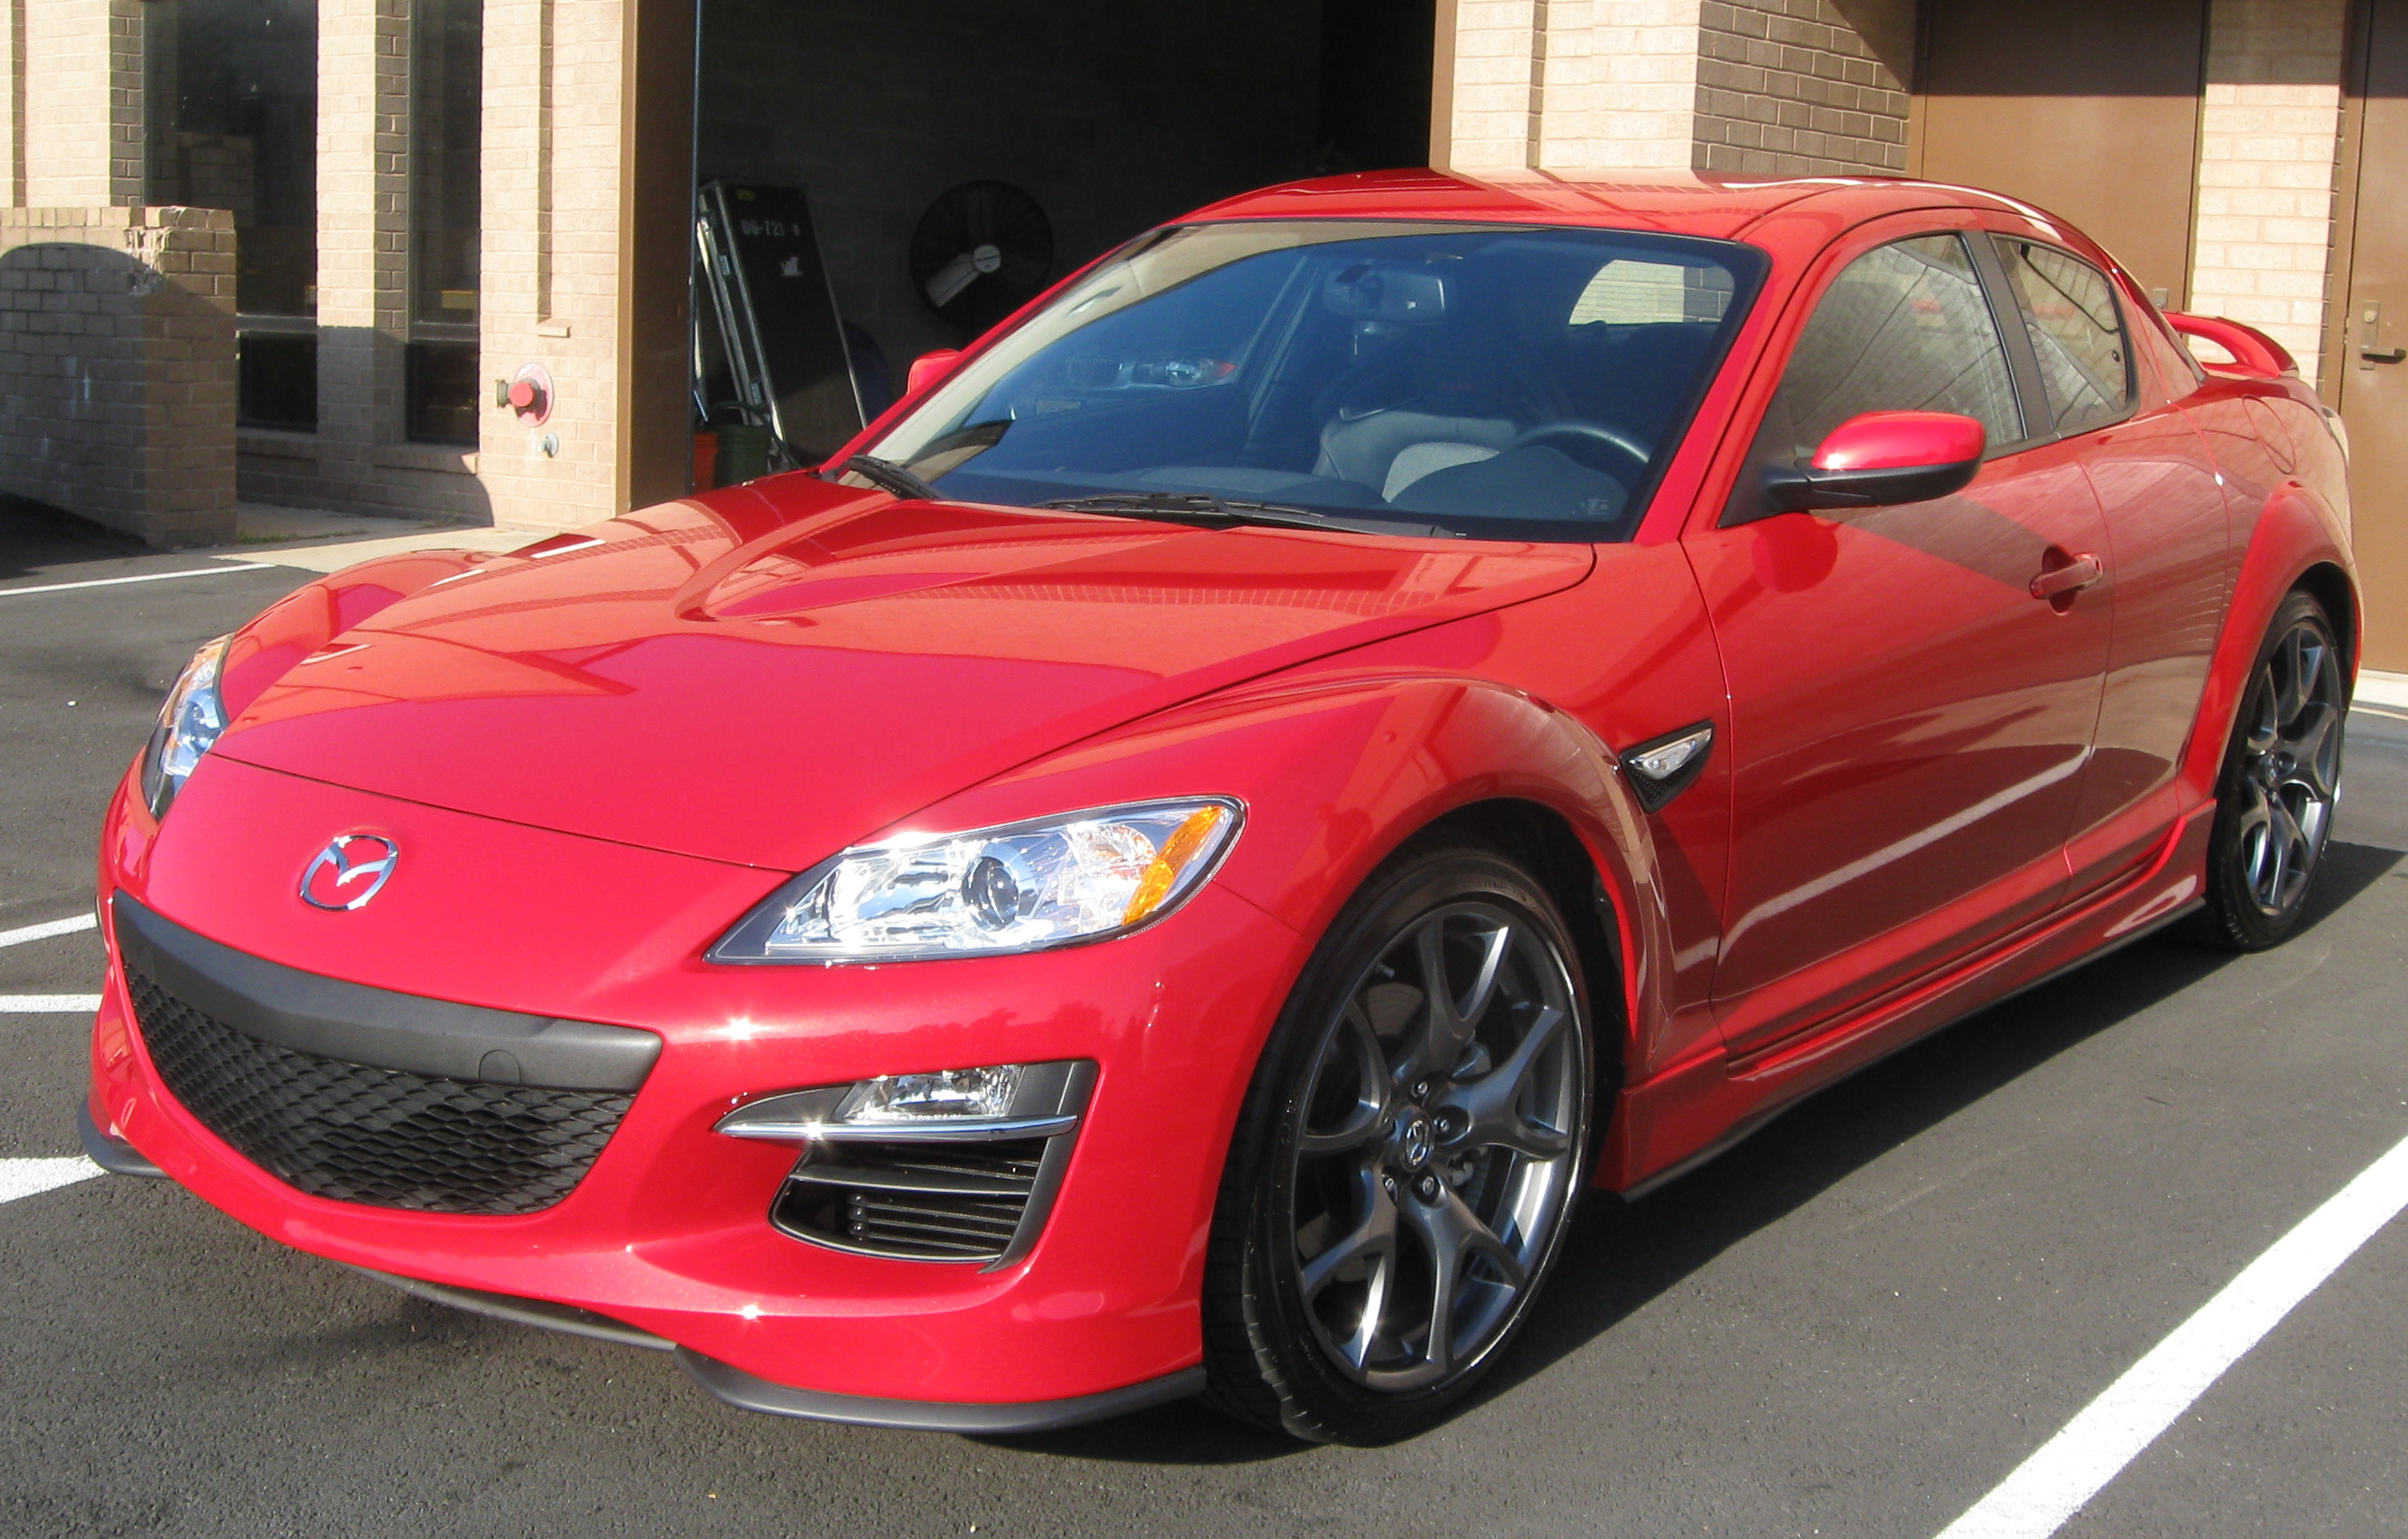 http://enacademic.com/pictures/enwiki/50/2010_Mazda_RX-8_R3_--_09-03-2009.jpg